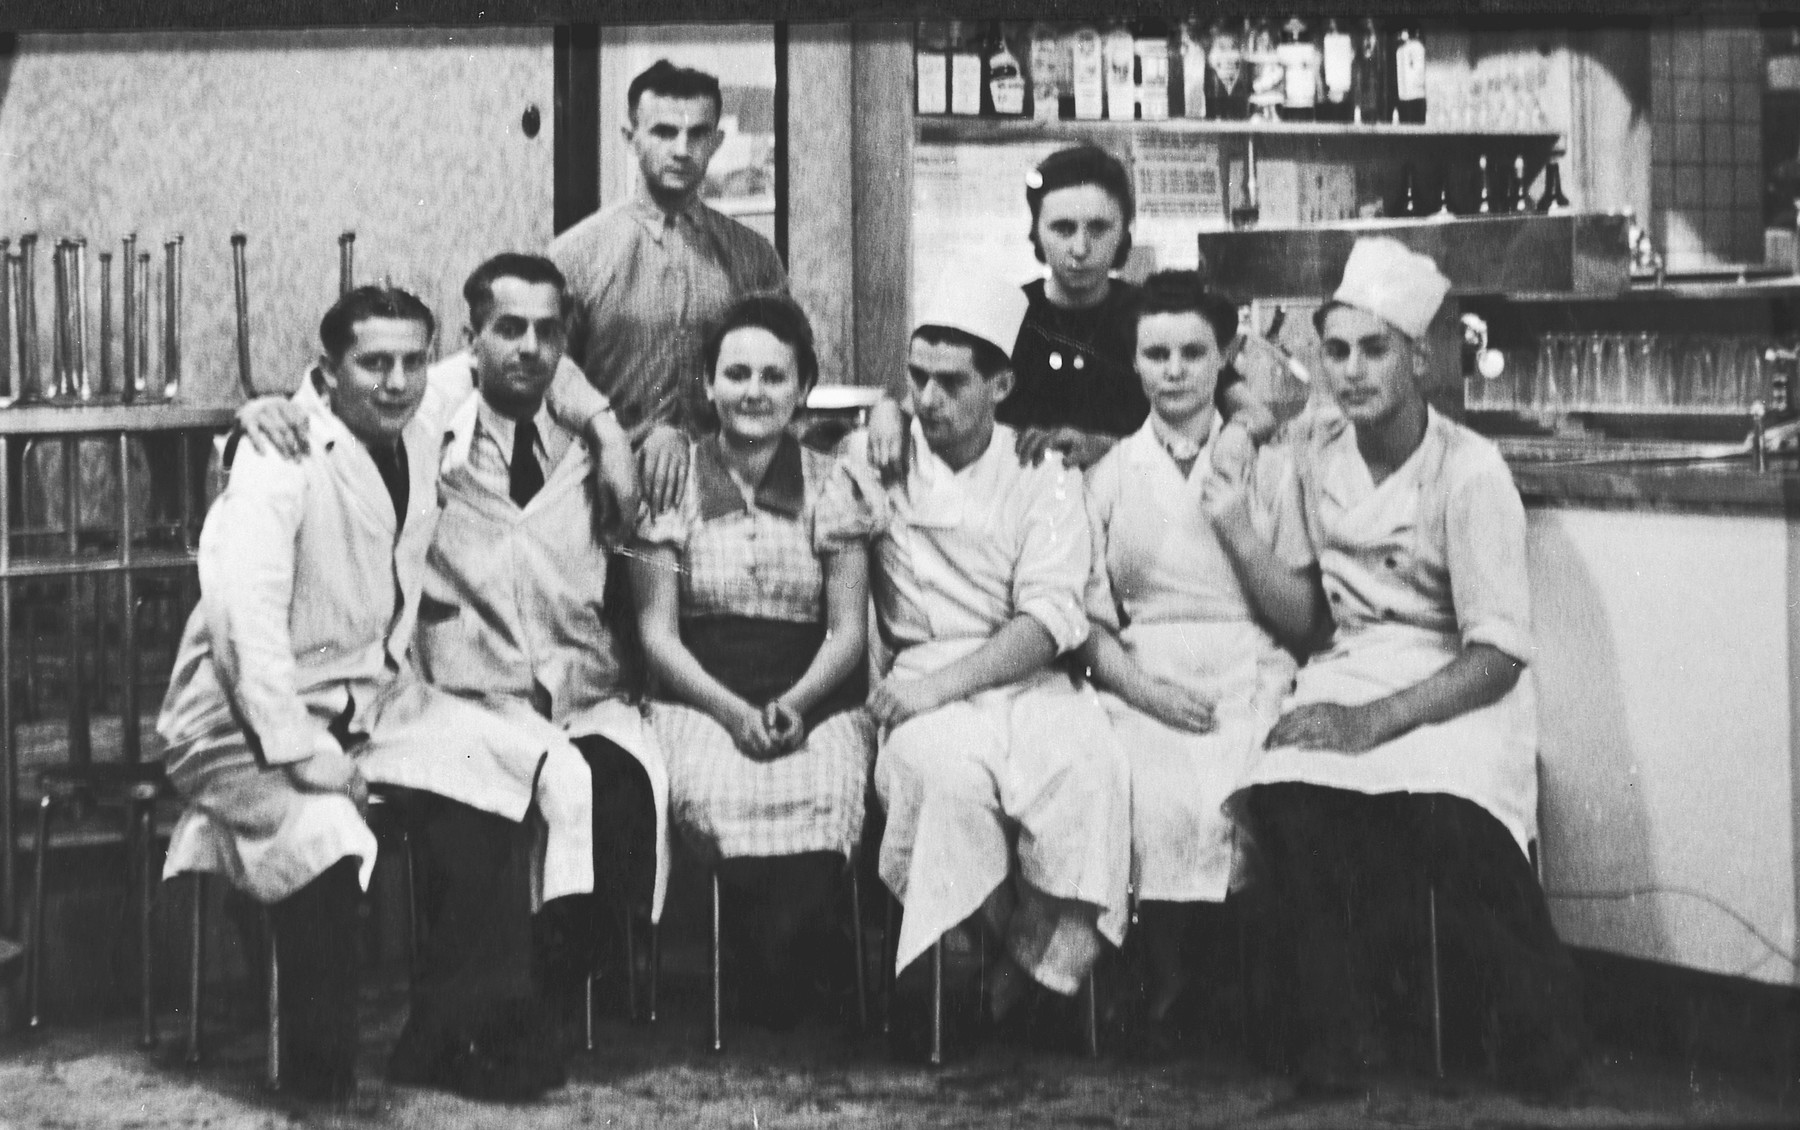 Group portrait of cooks in a dining hall or kitchen in Prague during the Nazi occupation.  Among those pictured is Edgar Krasa (left), who was working as an apprentice chef.